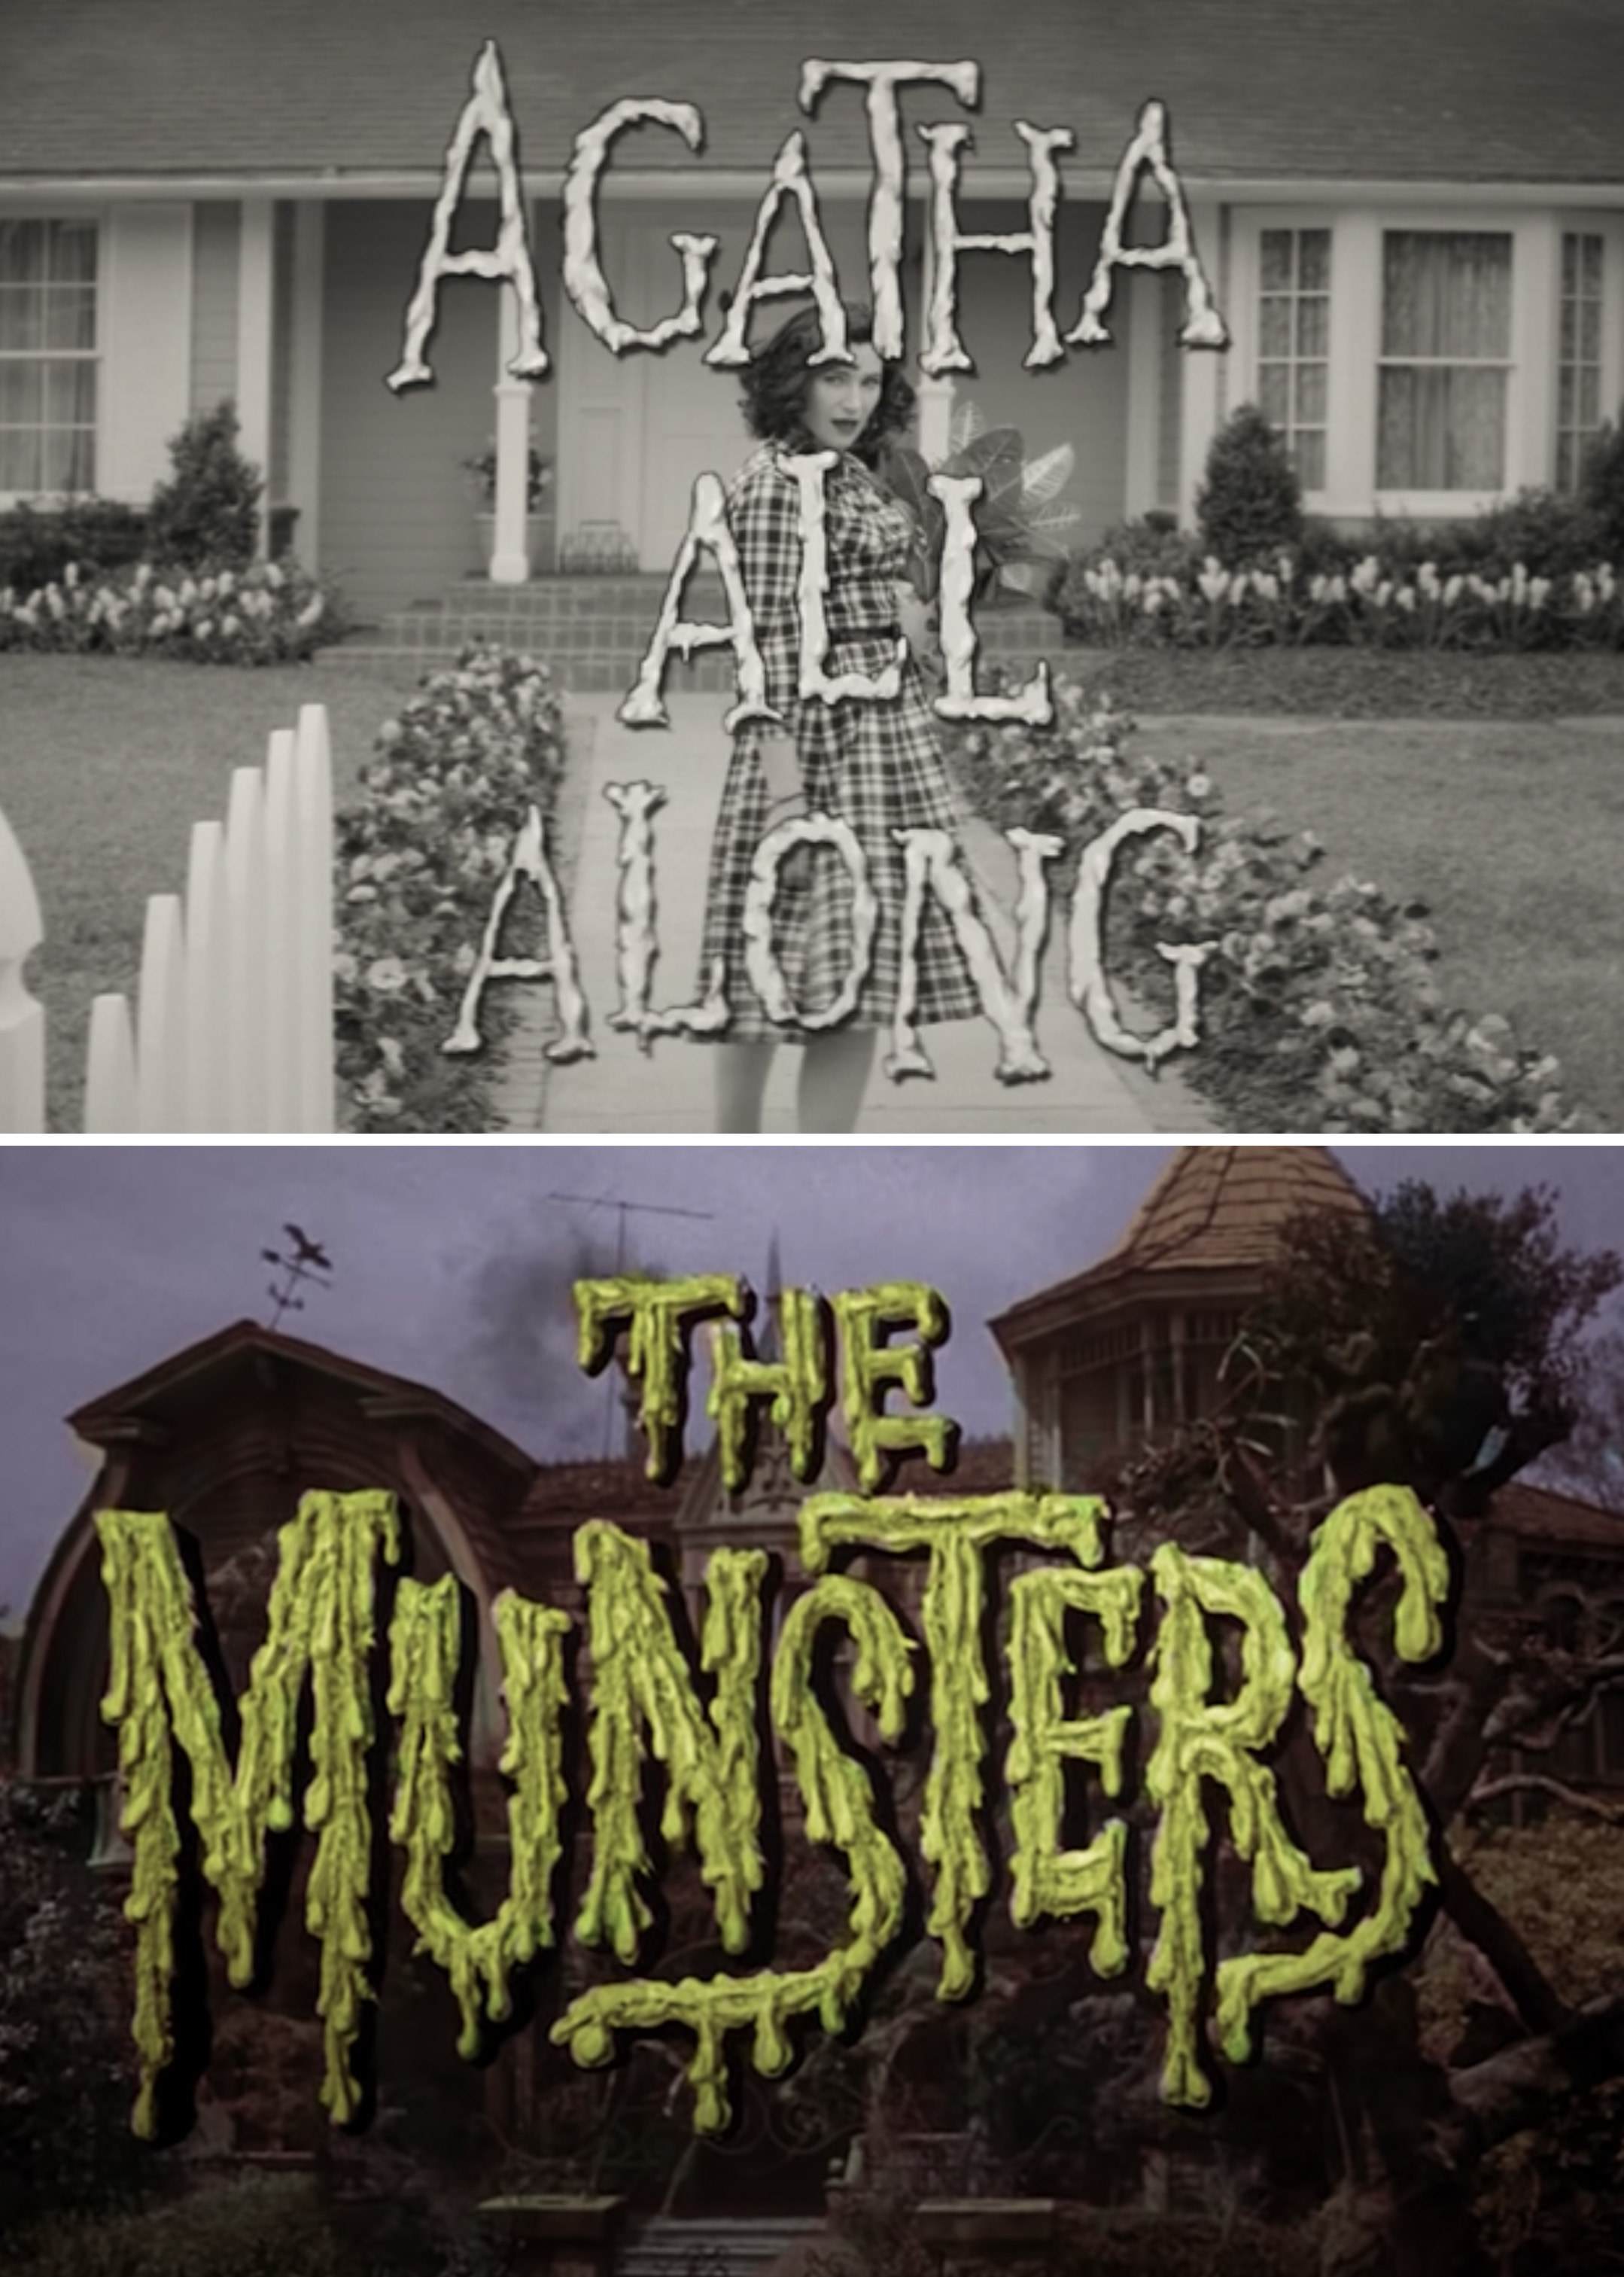 Agatha All Along title vs. The Munsters titles